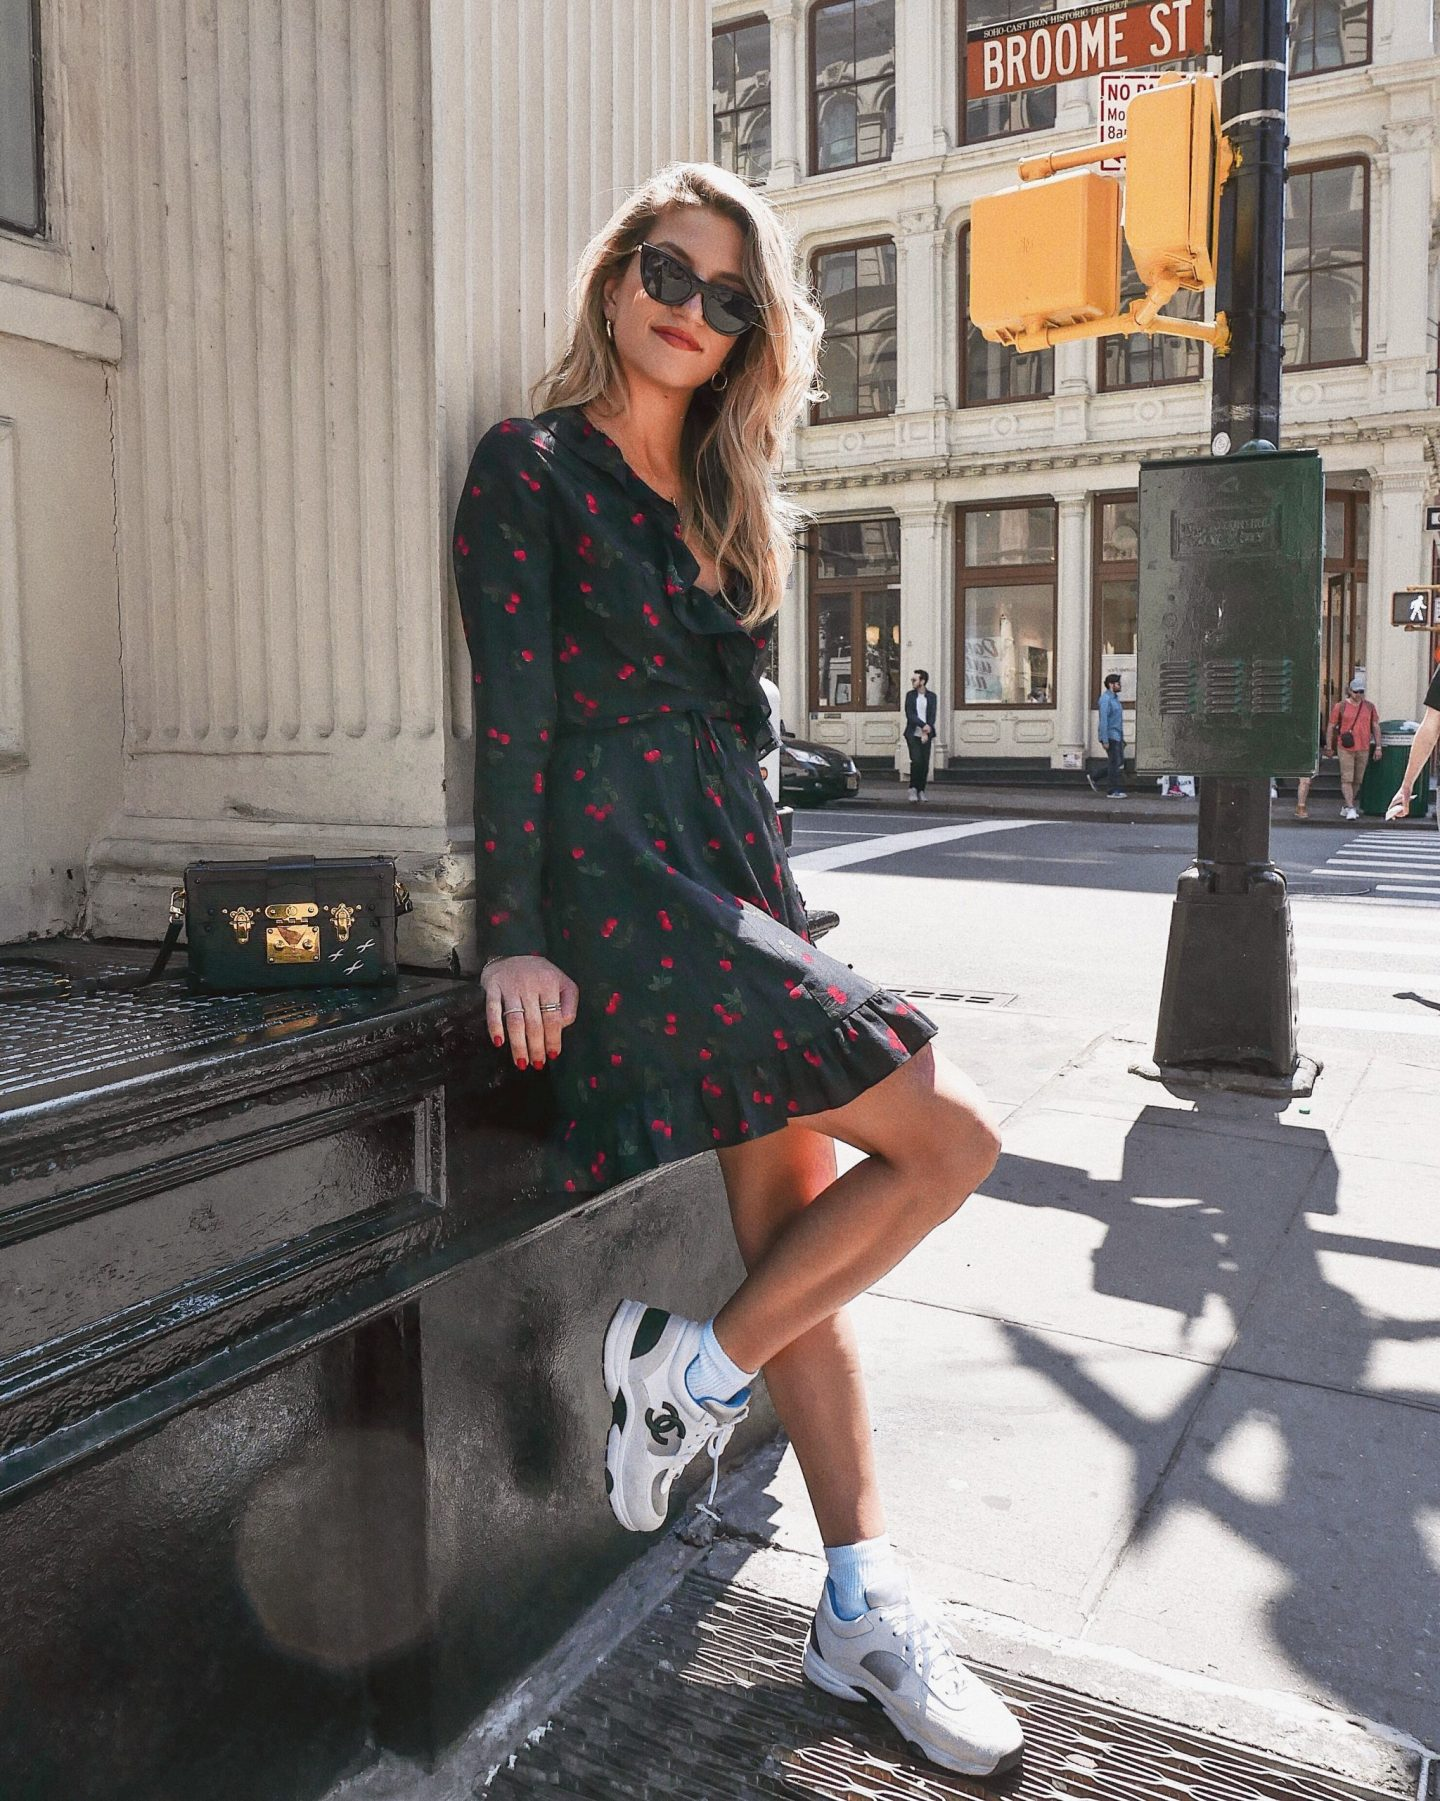 Cassandra DiMicco, Cass DiMicco, Dressed For Dreams, NYC, New York City, New York, Street Style NYC, Street Style 2018, NYC Street Style Street Style Outfits, 2018 Trends, NYC Fashion Blogger, Chanel sneakers, the kooples, the kooples cherry dress, le specs sunnies, dad sneakers trend